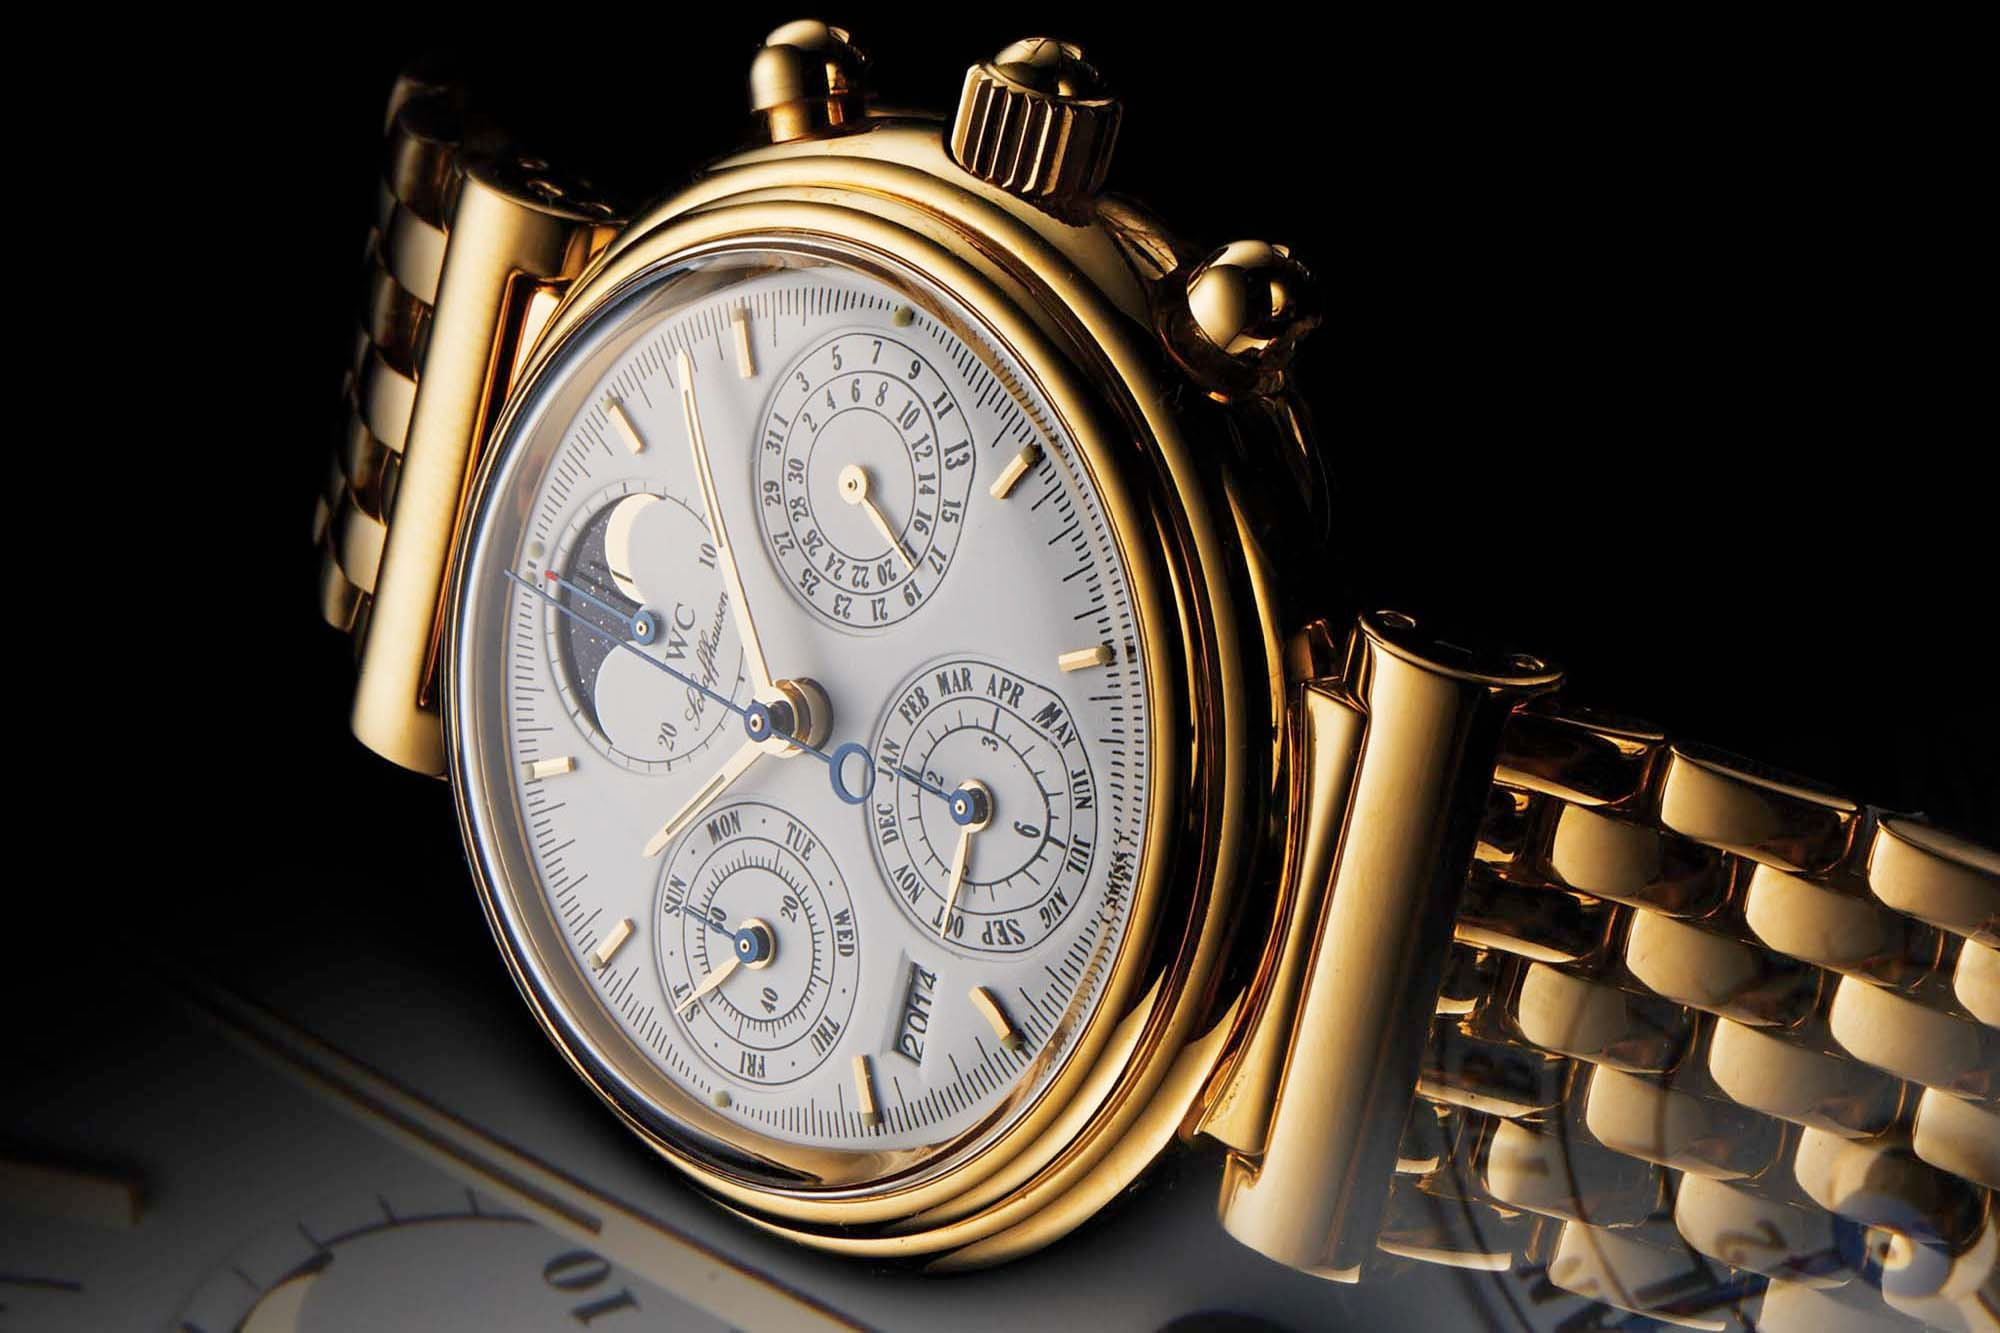 The IWC Da Vinci Ref. 3750.  Interview: Watches Of The Post-Quartz Era That Would Make It Into A Horological Museum, 500 Years From Now, According To Stephen Forsey Interview: Watches Of The Post-Quartz Era That Would Make It Into A Horological Museum, 500 Years From Now, According To Stephen Forsey 1212